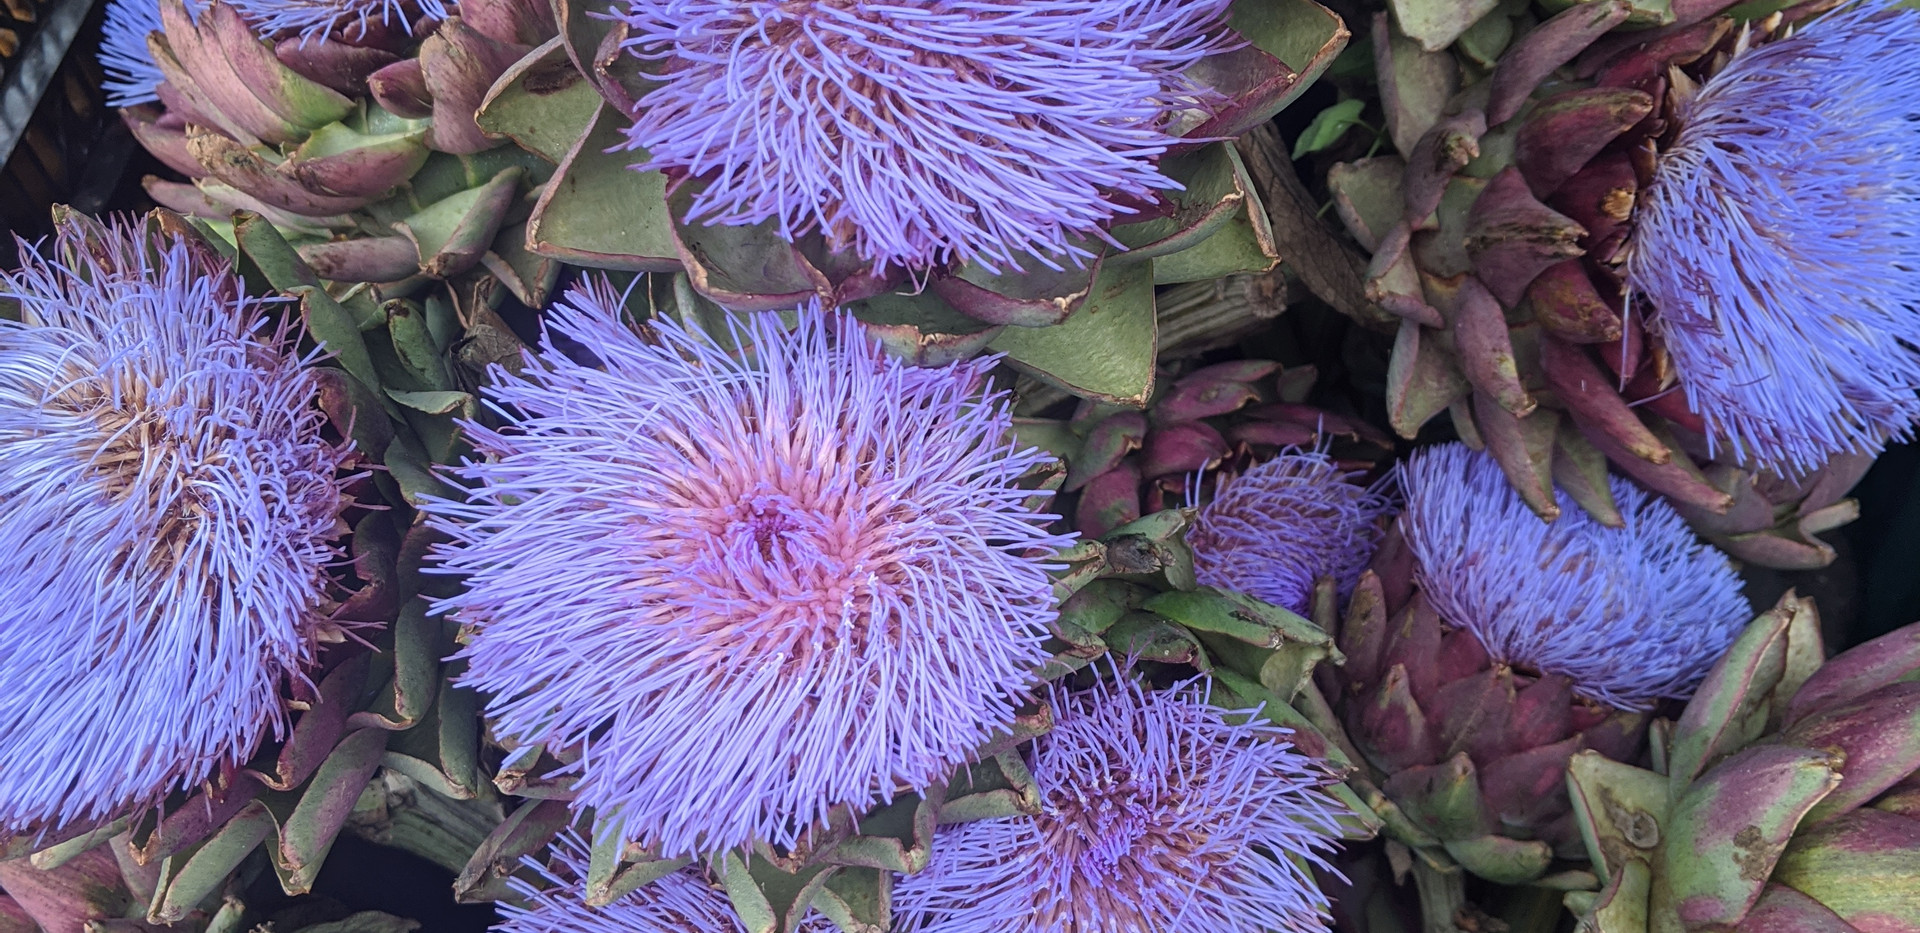 Artichokes with Blooms